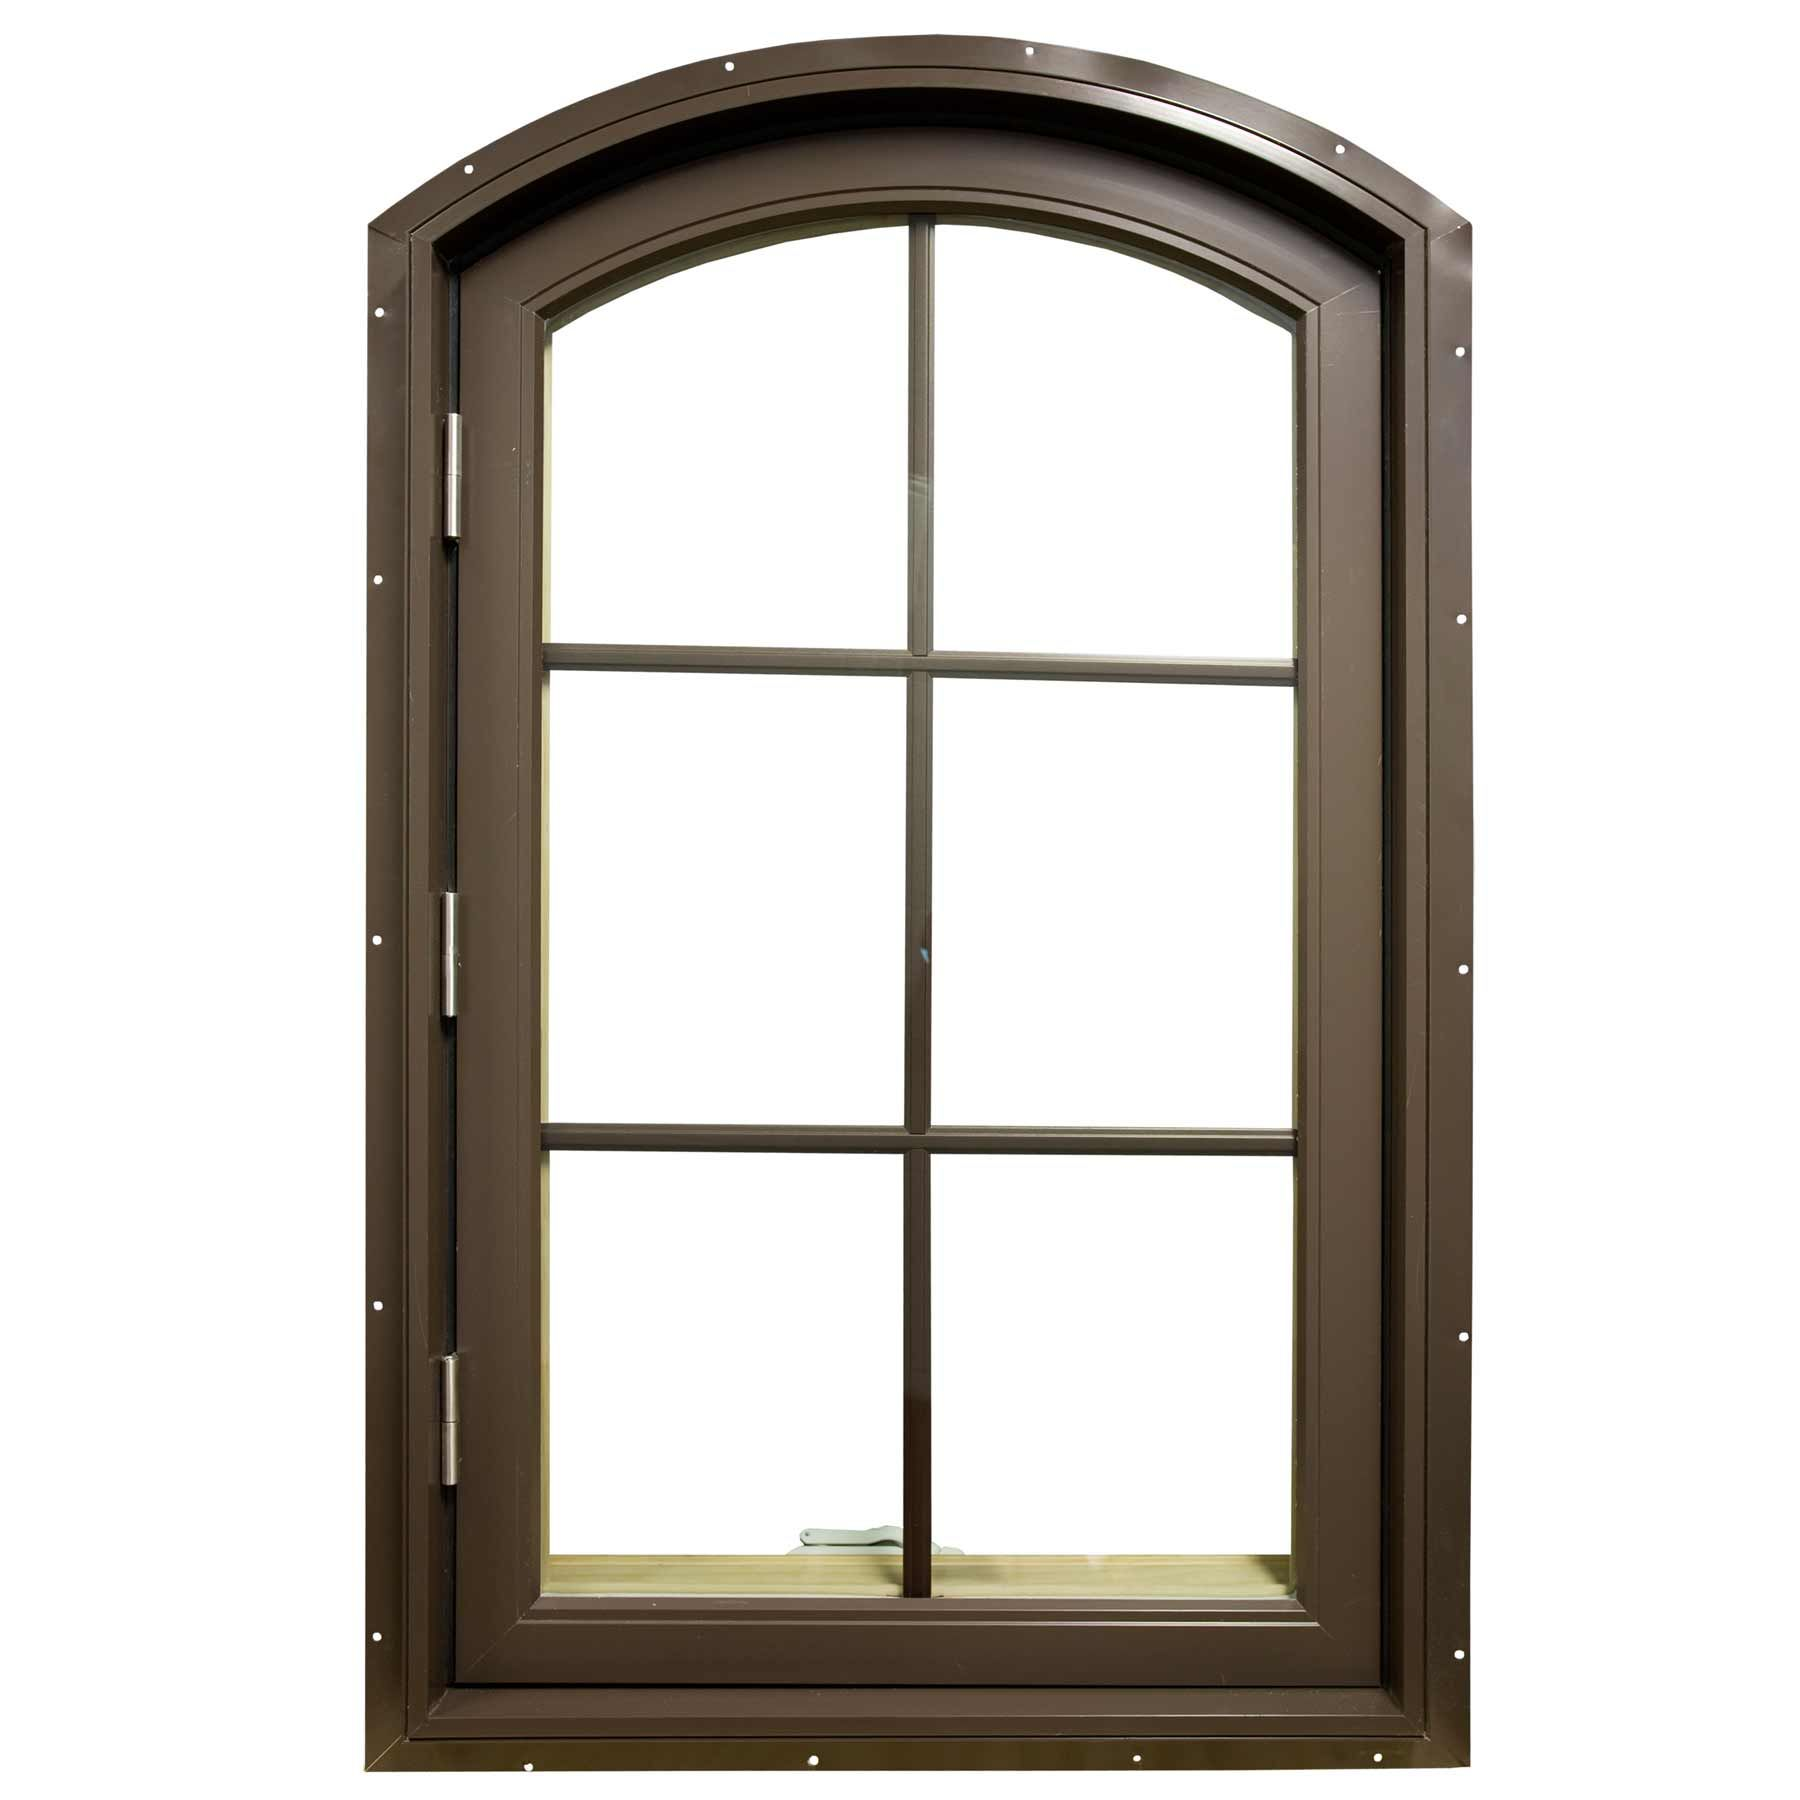 Aluminum casement windows for home feel the home for Aluminium glass windows and doors